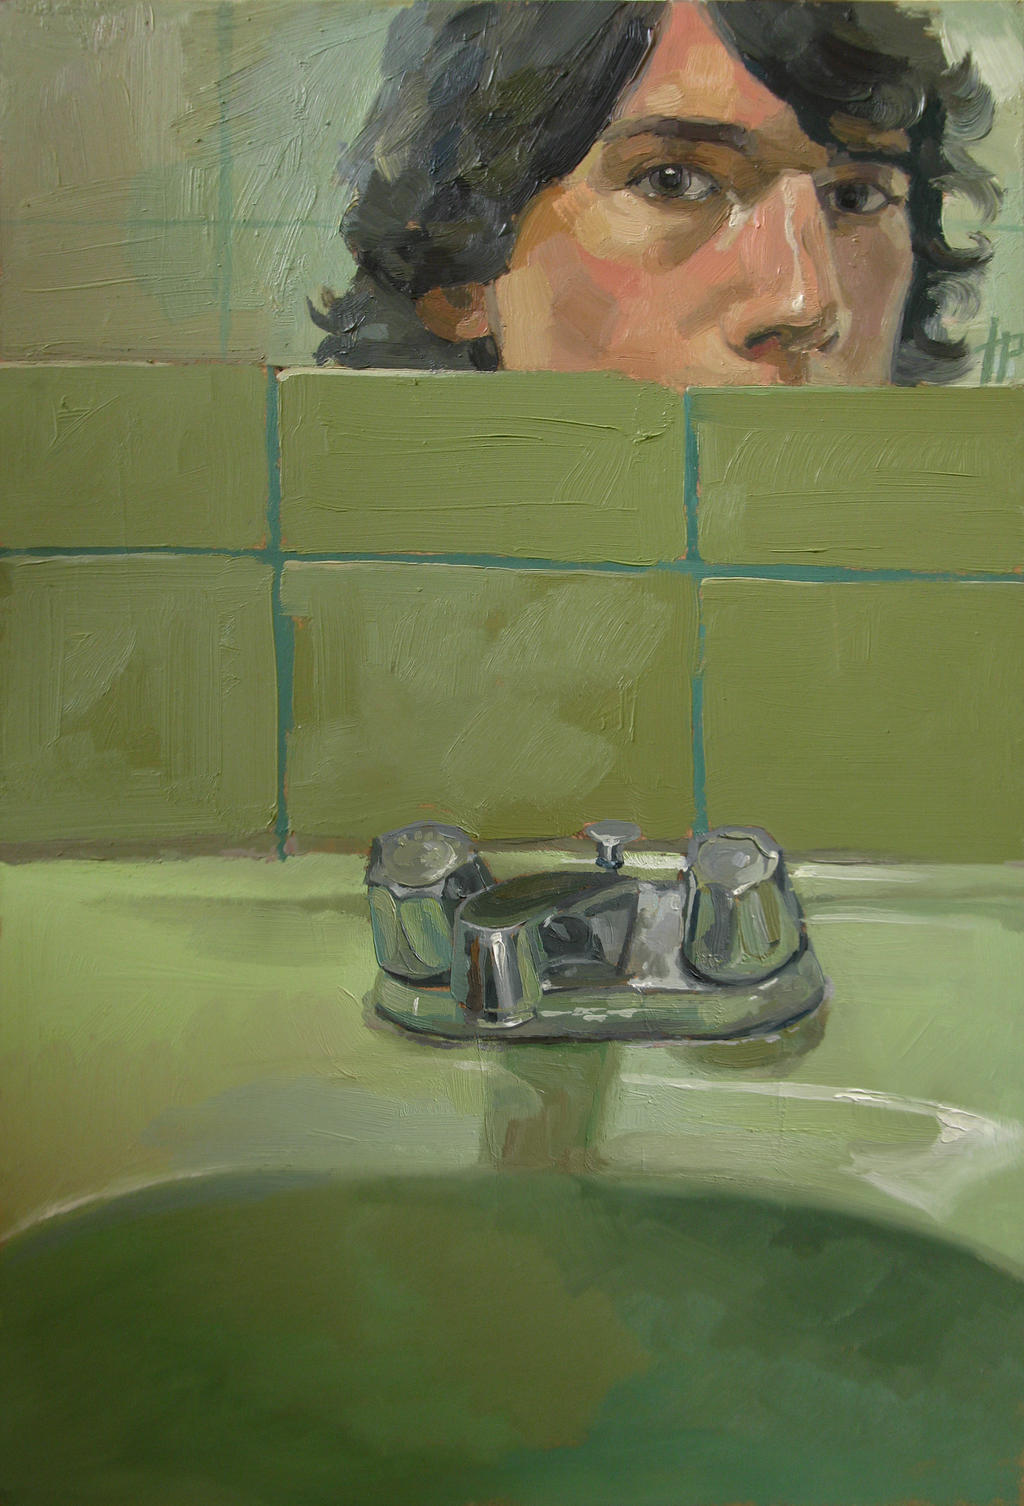 Self Portrait in the bathroom by TomasProchazka